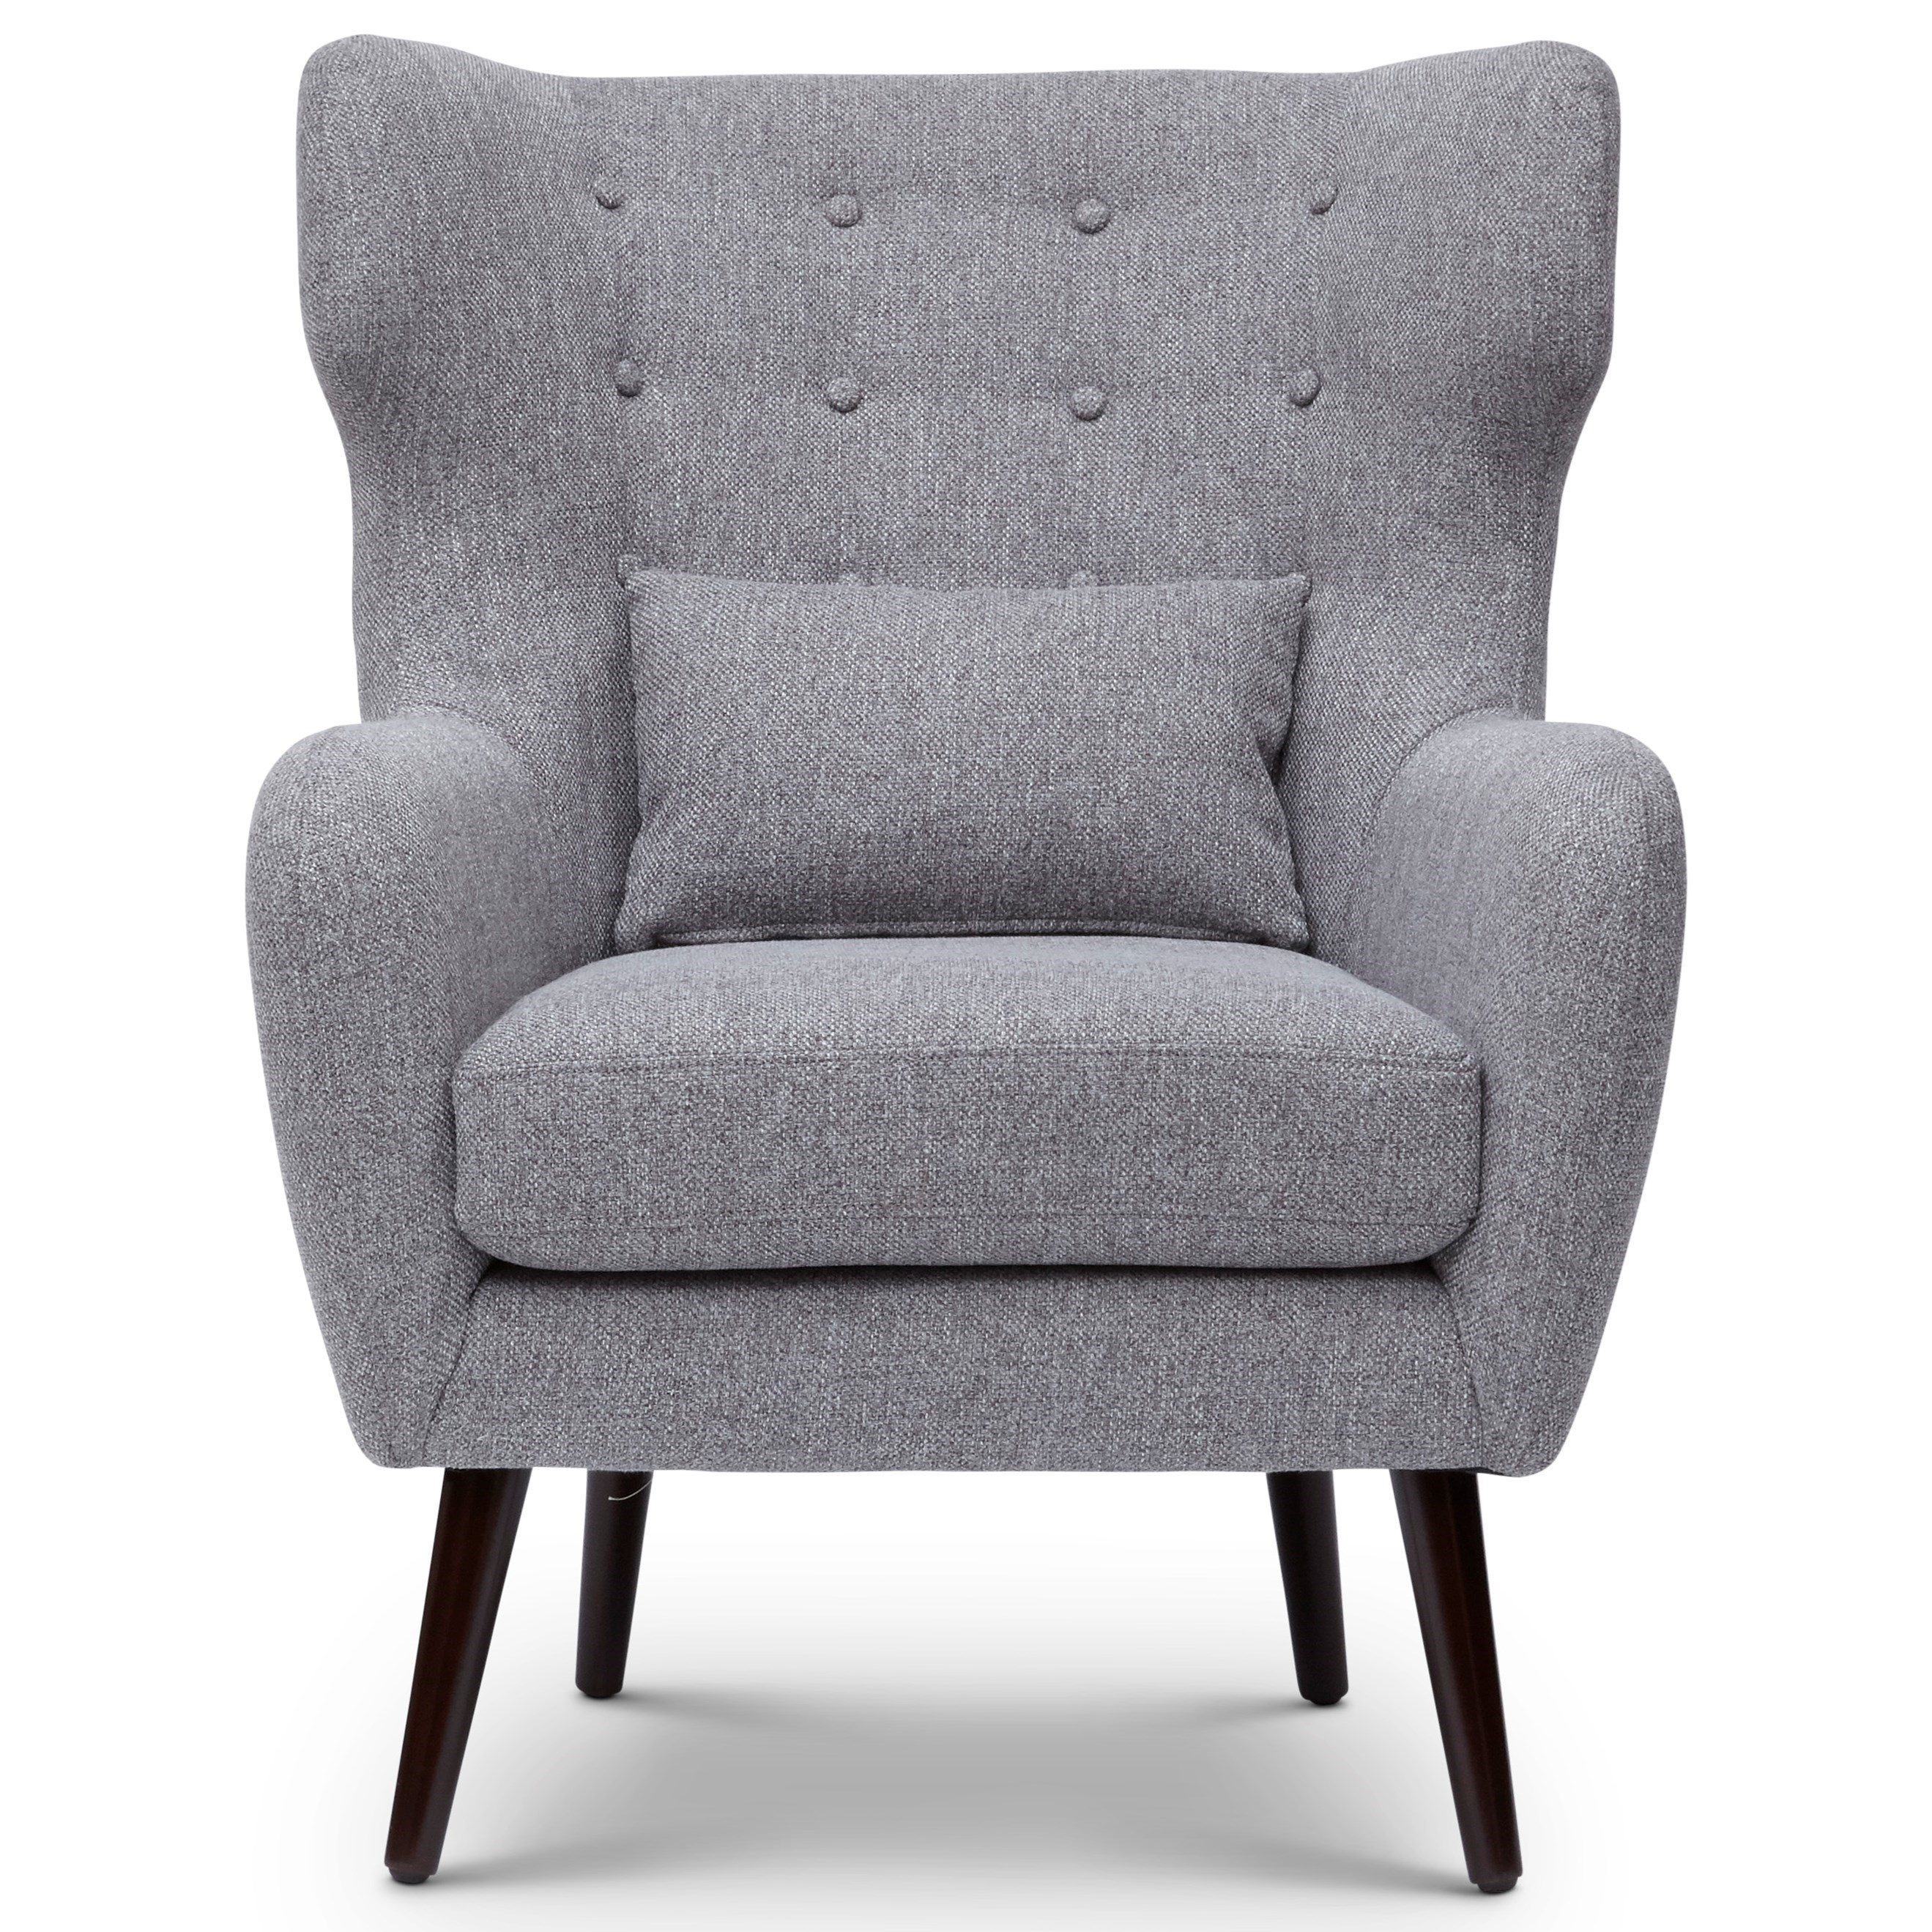 modern accent chairs. Jofran Easy Living Ava Mid Century Modern Accent Chair Chairs G